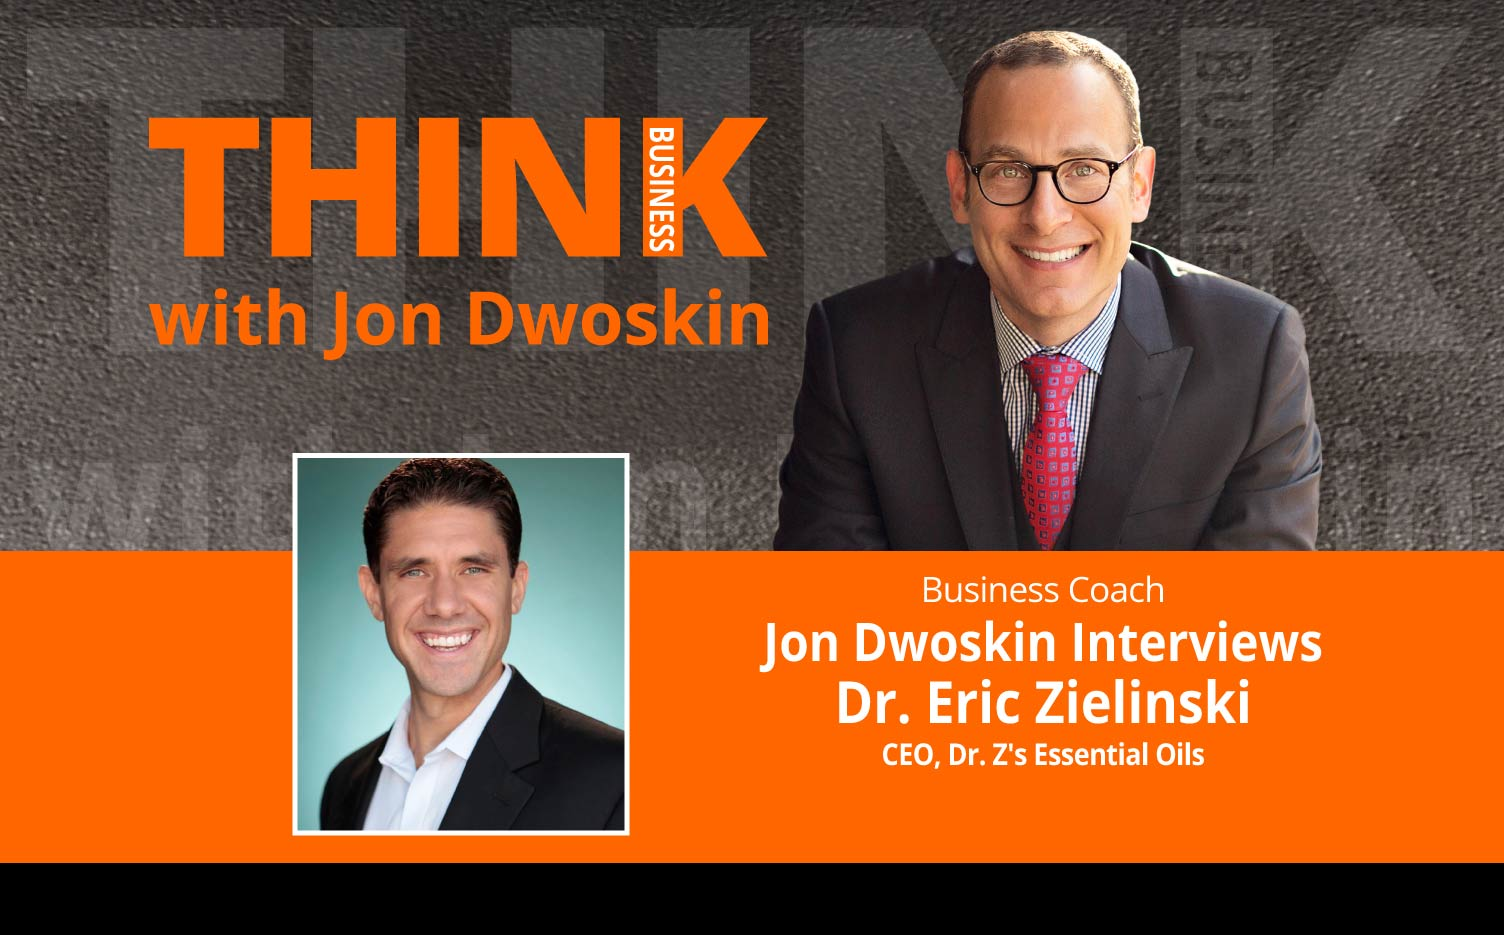 THINK Business Podcast: Jon Dwoskin Interviews Dr. Eric Zielinski, CEO, Dr. Z's Essential Oils